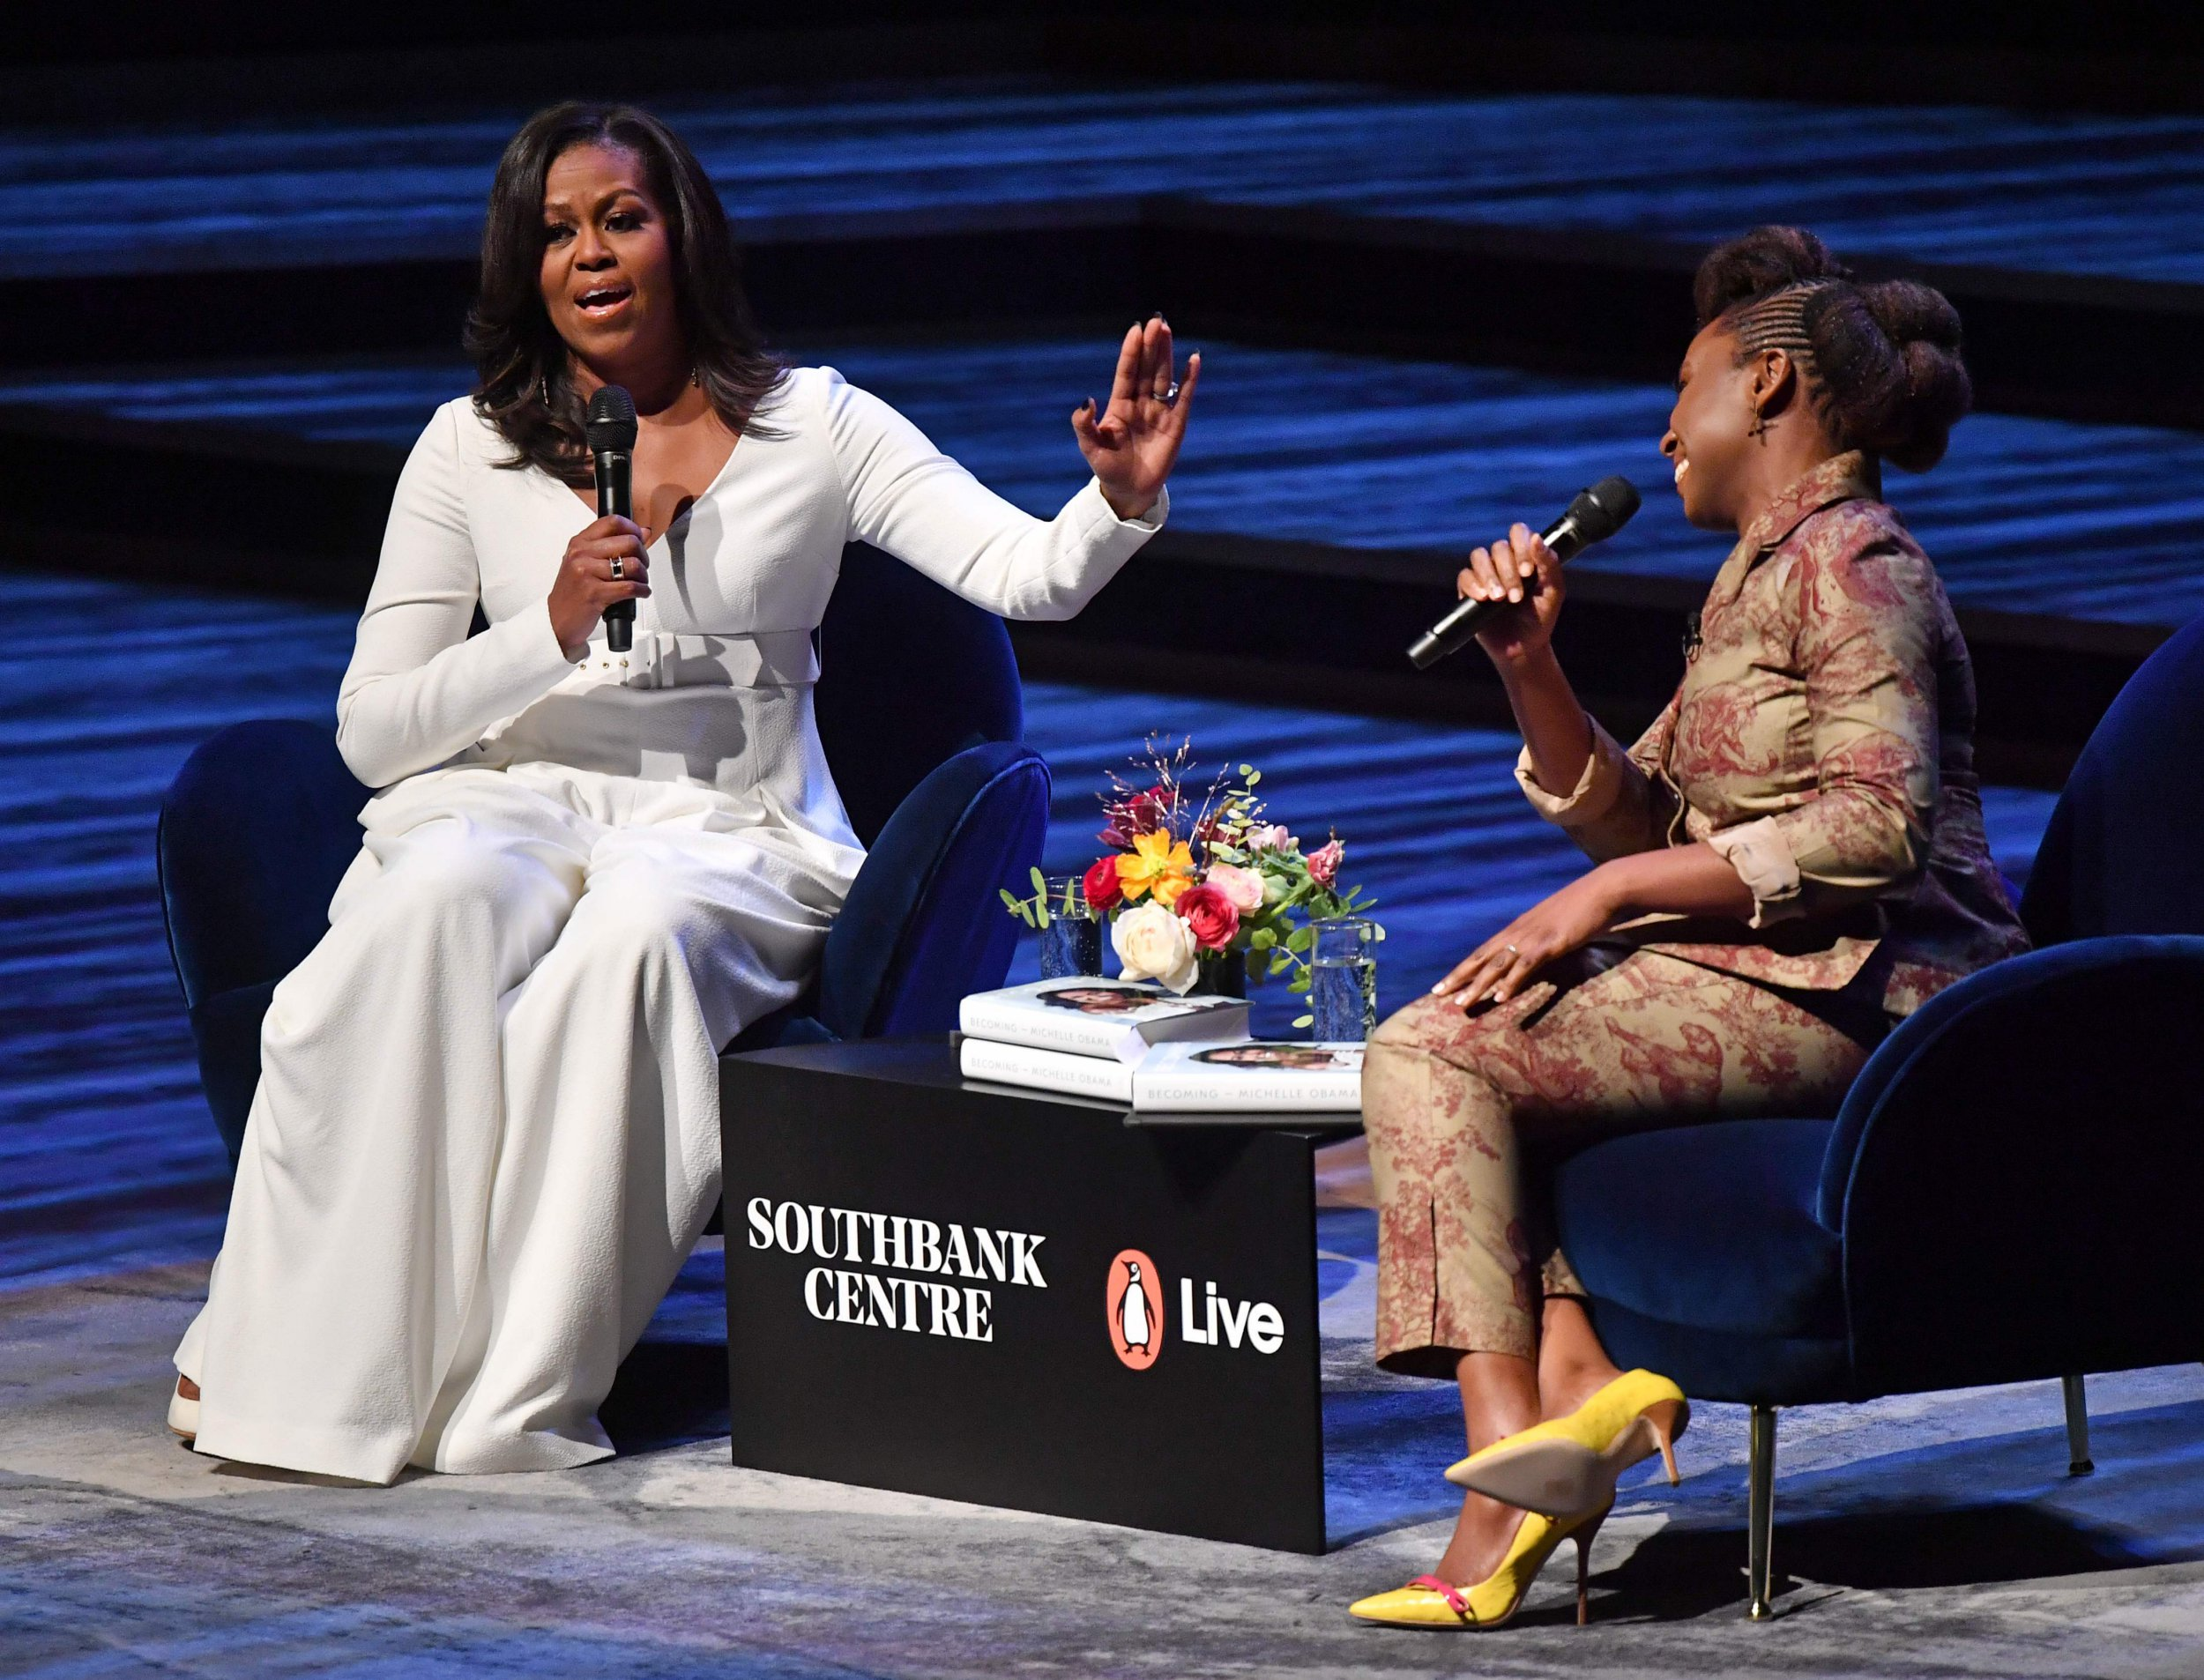 """Former US first lady Michelle Obama (L) speaks with Nigerian novelist Chimamanda Ngozi Adichie (R) at the Royal Festival Hall in London on December 3, 2018, during a tour to promote her memoir, """"Becoming"""". - Former US first lady Michelle Obama's book, """"Becoming,"""" sold more than two million copies in North America in its first 15 days. She said Sunday she was canceling book tour visits to Paris and Berlin to attend the funeral of former president George H.W. Bush, who died Friday aged 94. (Photo by Ben STANSALL / AFP)BEN STANSALL/AFP/Getty Images"""